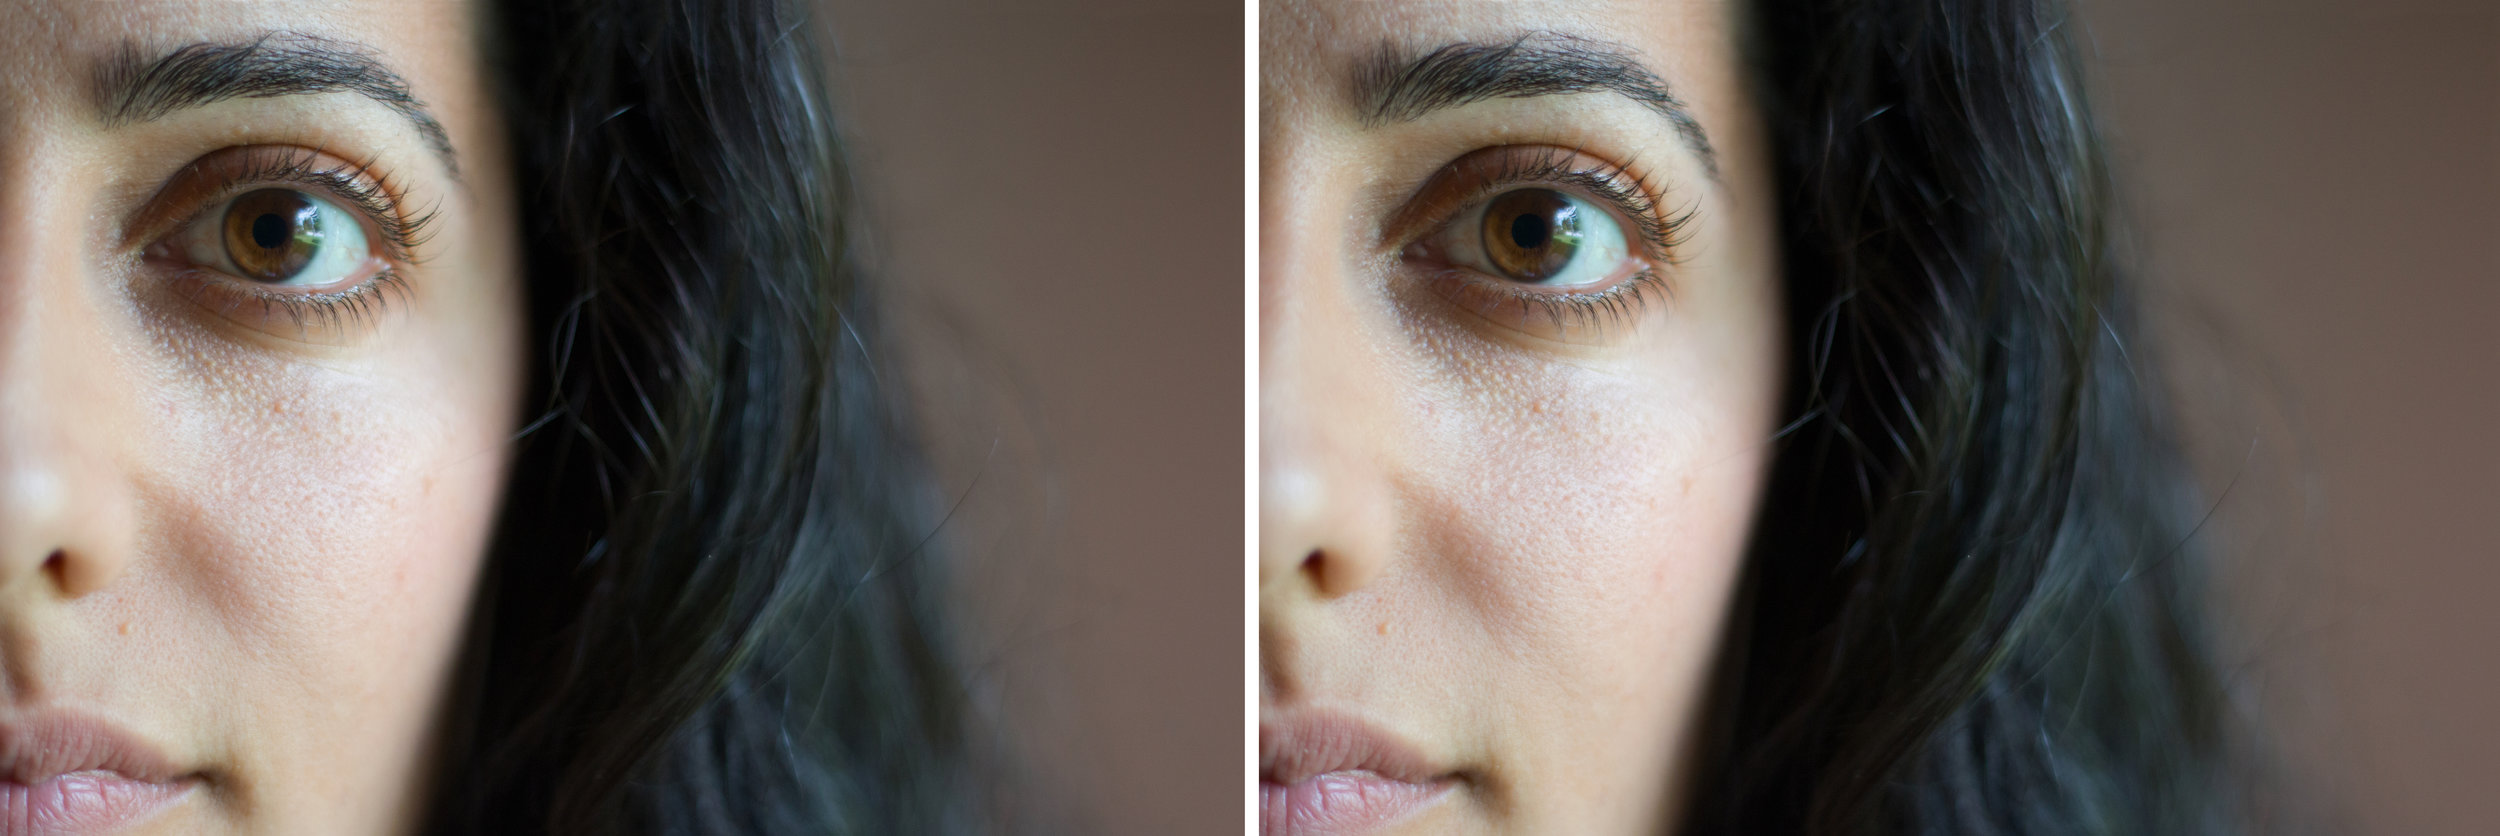 diptych_9_low-res.jpg